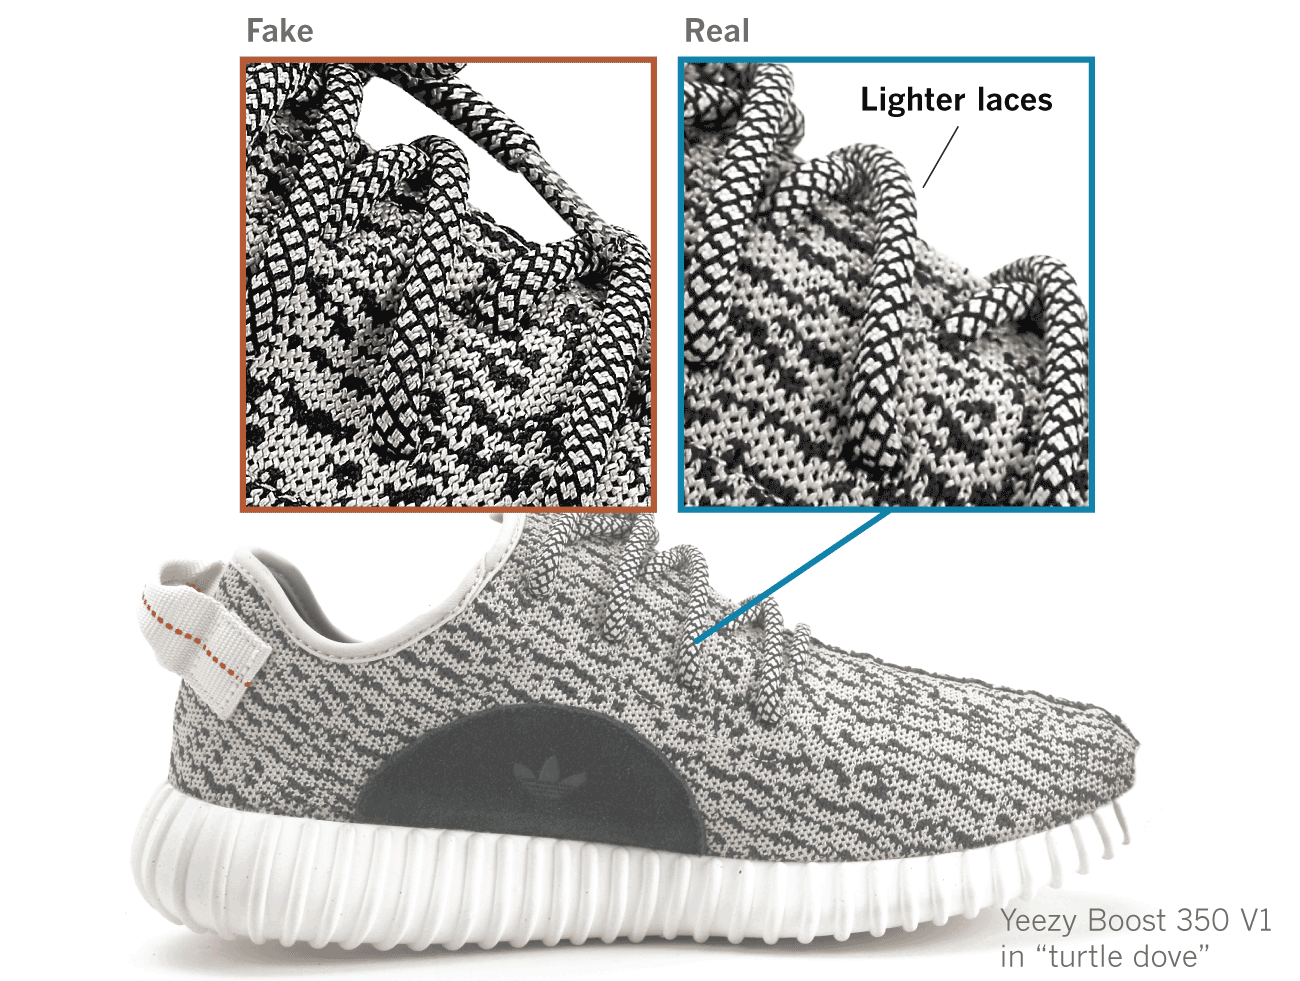 f5f12433827 ... Adidas Yeezy has become so sophisticated that even some of the most  astute fans can t tell the difference between a well-made fake and the real  deal.